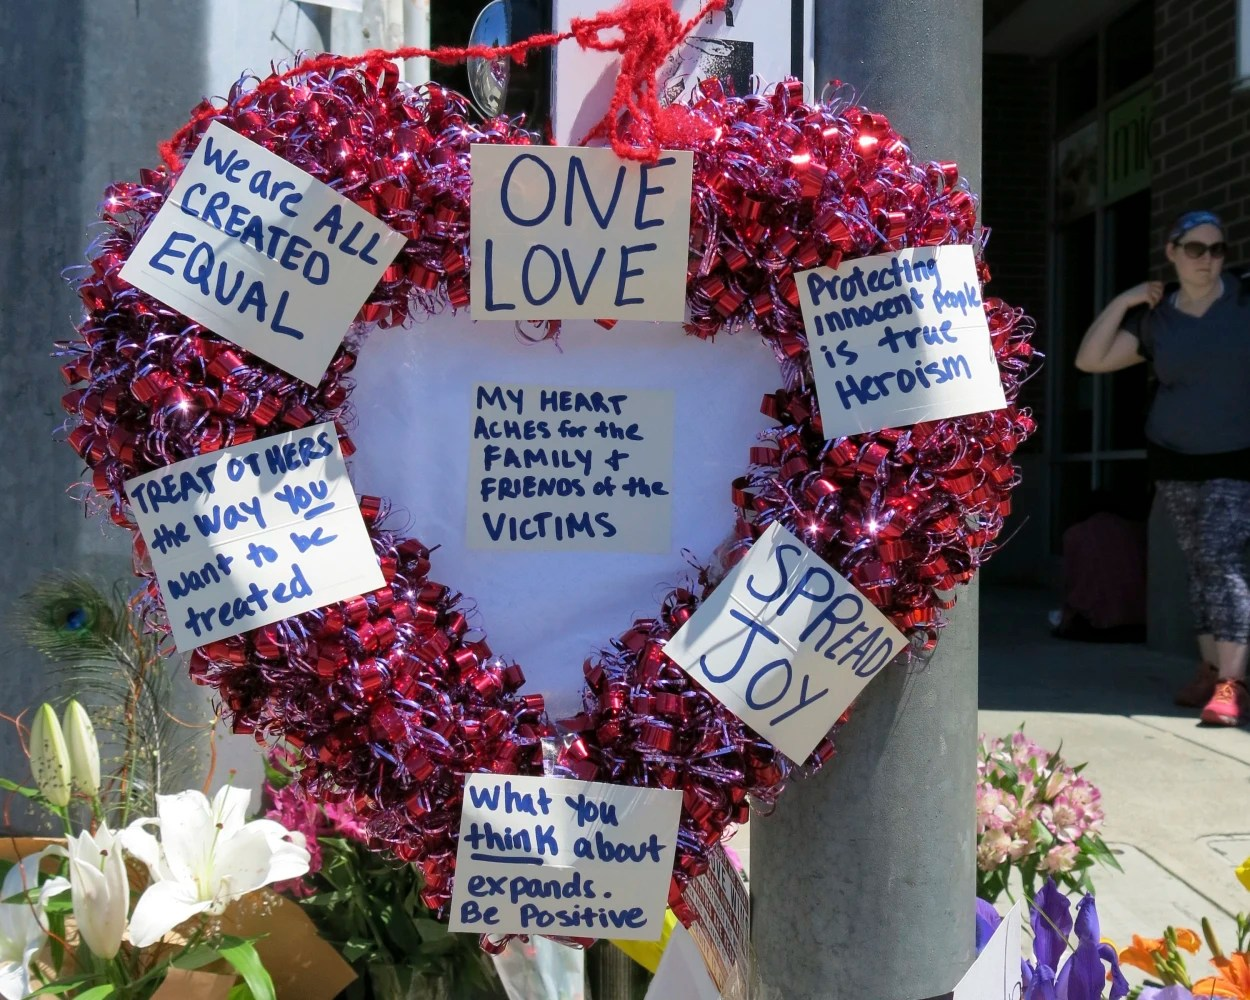 Portland mayor: Call off free-speech rally in wake of fatal stabbing